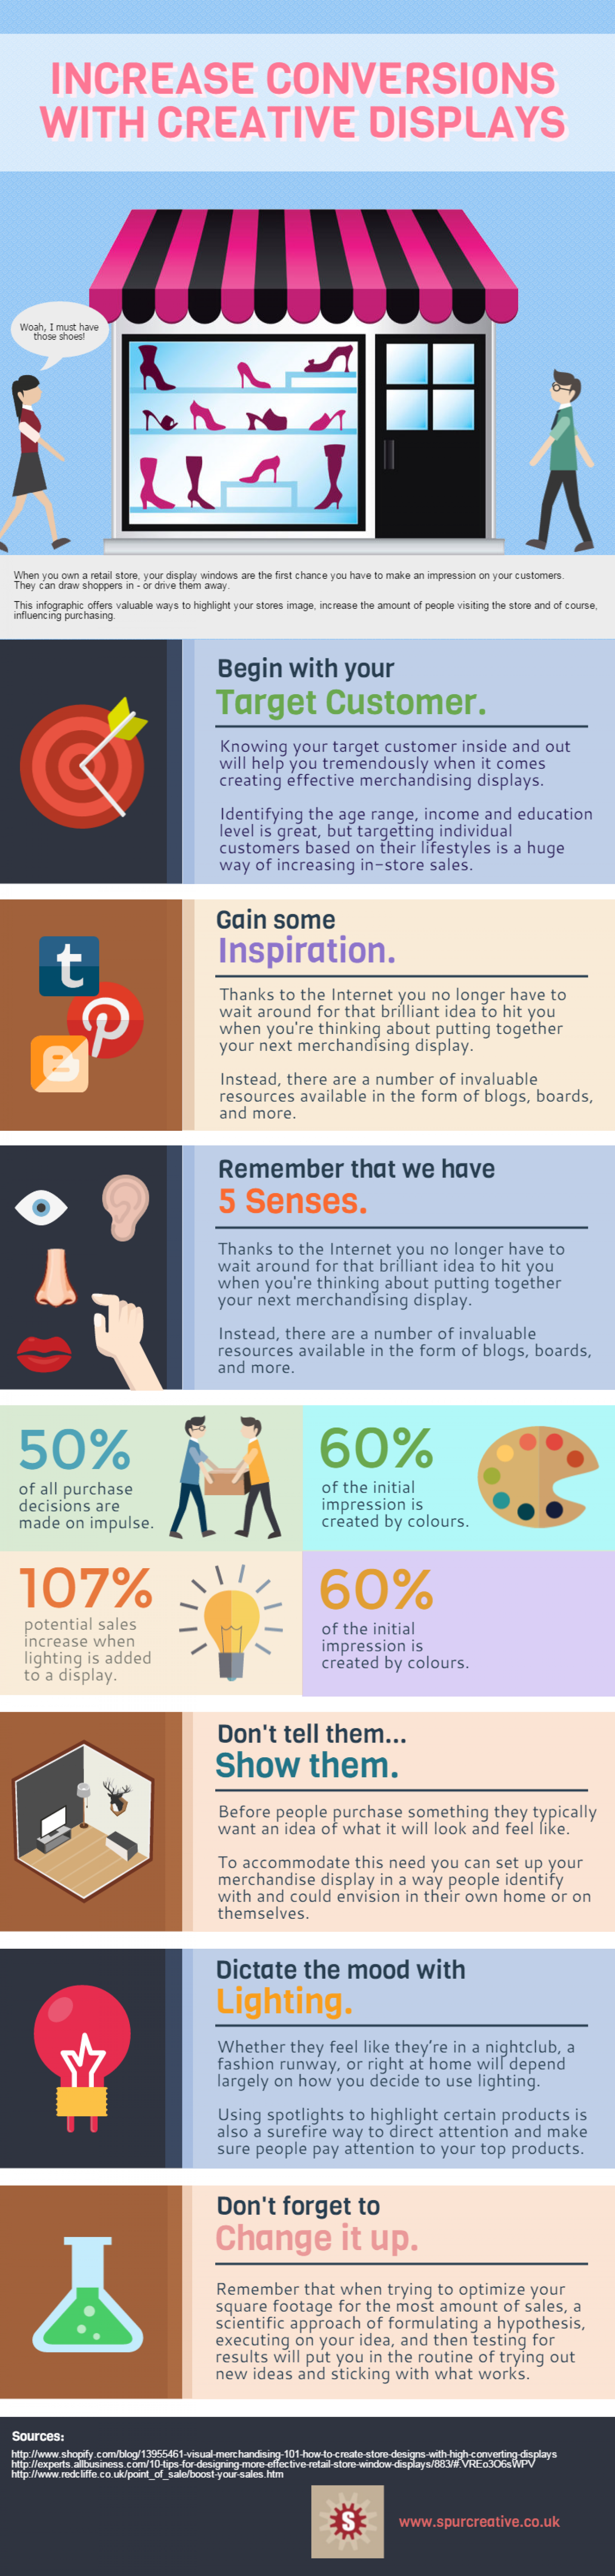 How To Increase Conversions With Creative Retail Displays Infographic